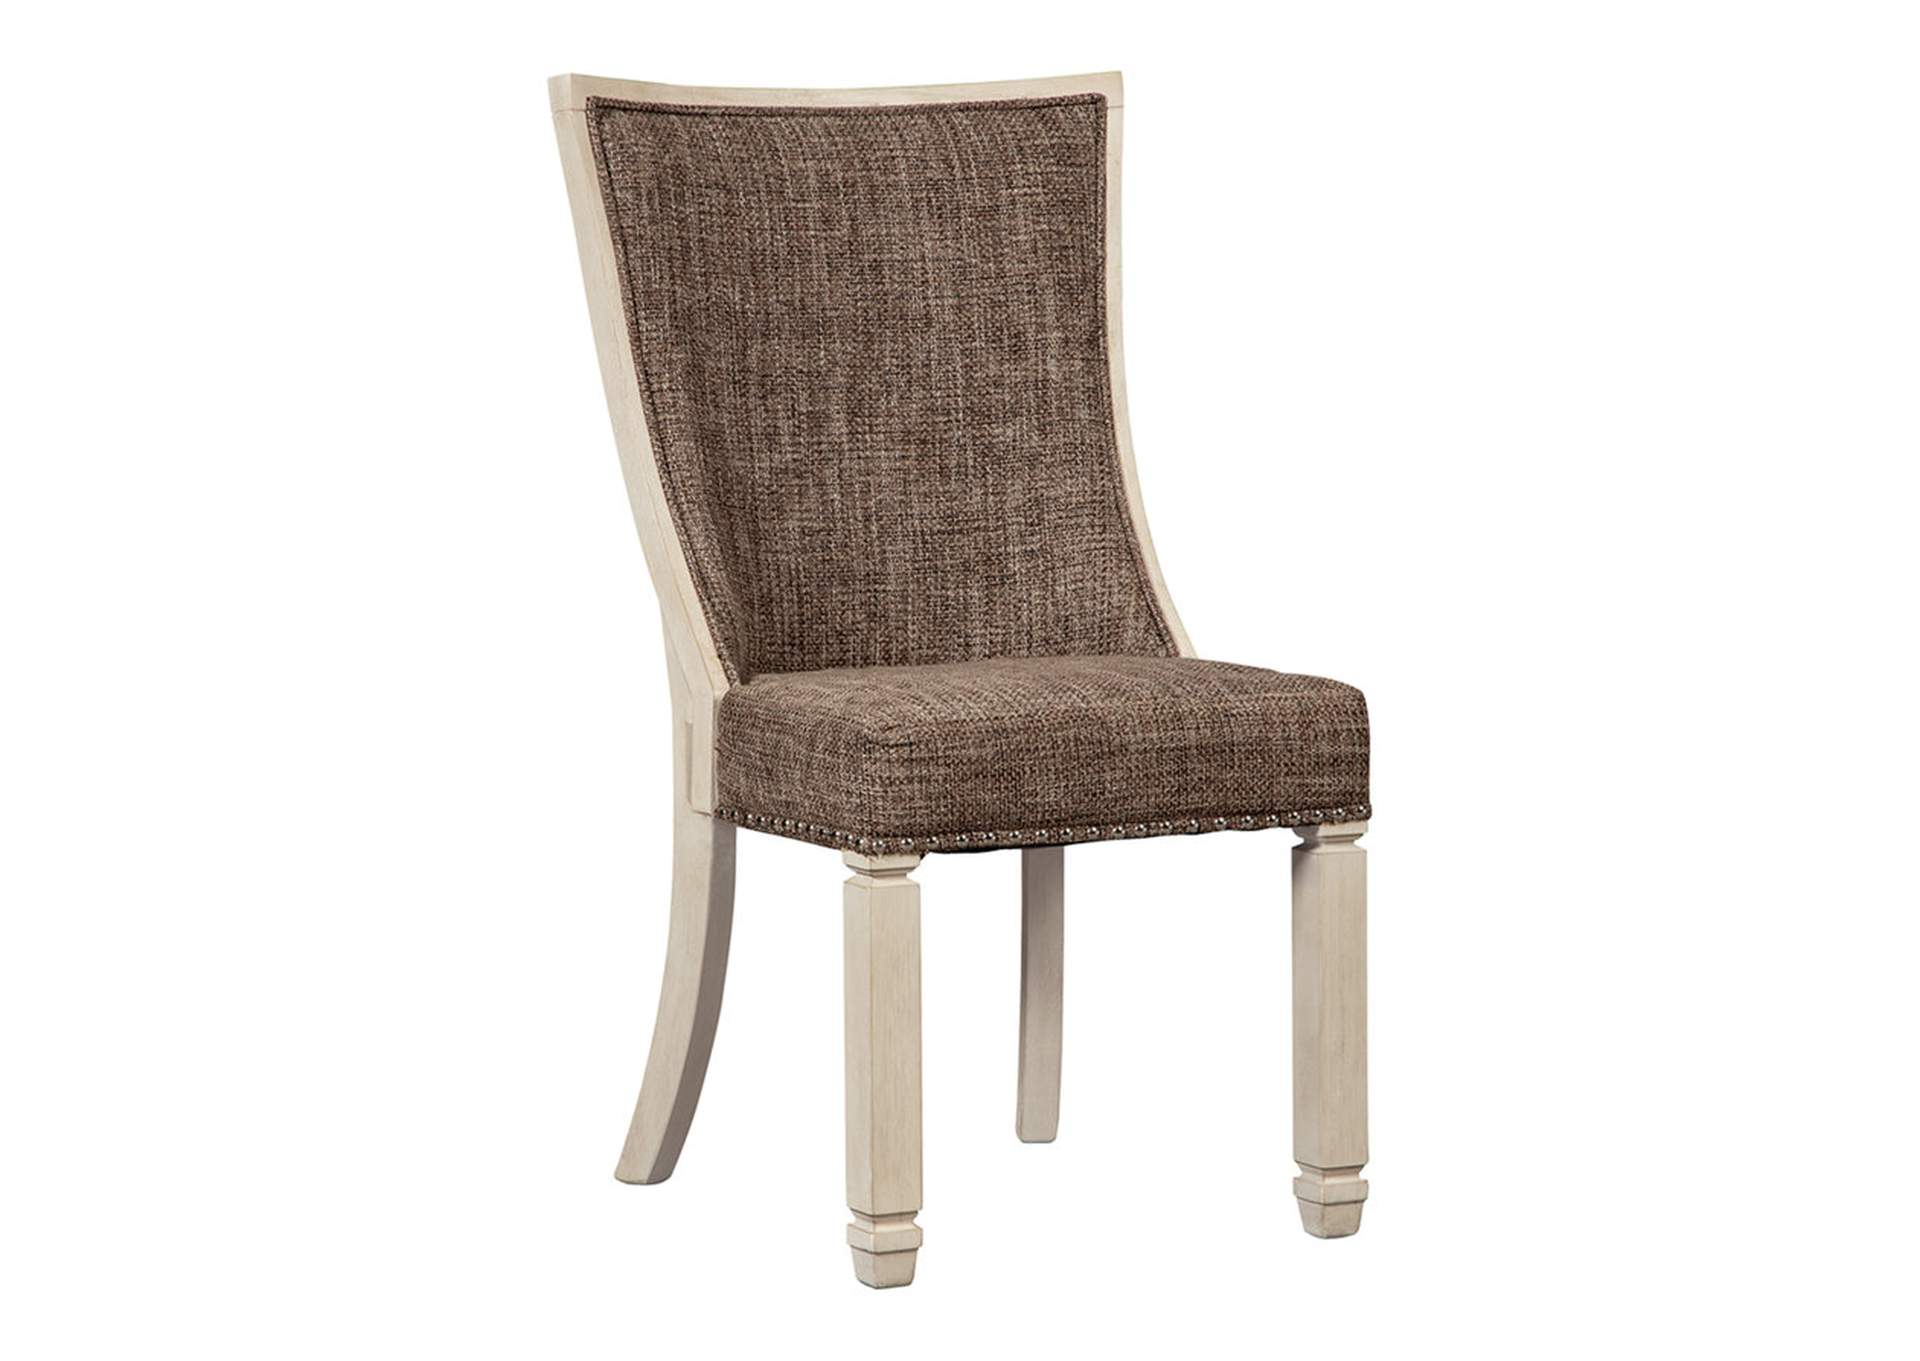 Bolanburg Dining Room Chair (Set of 2),Signature Design By Ashley